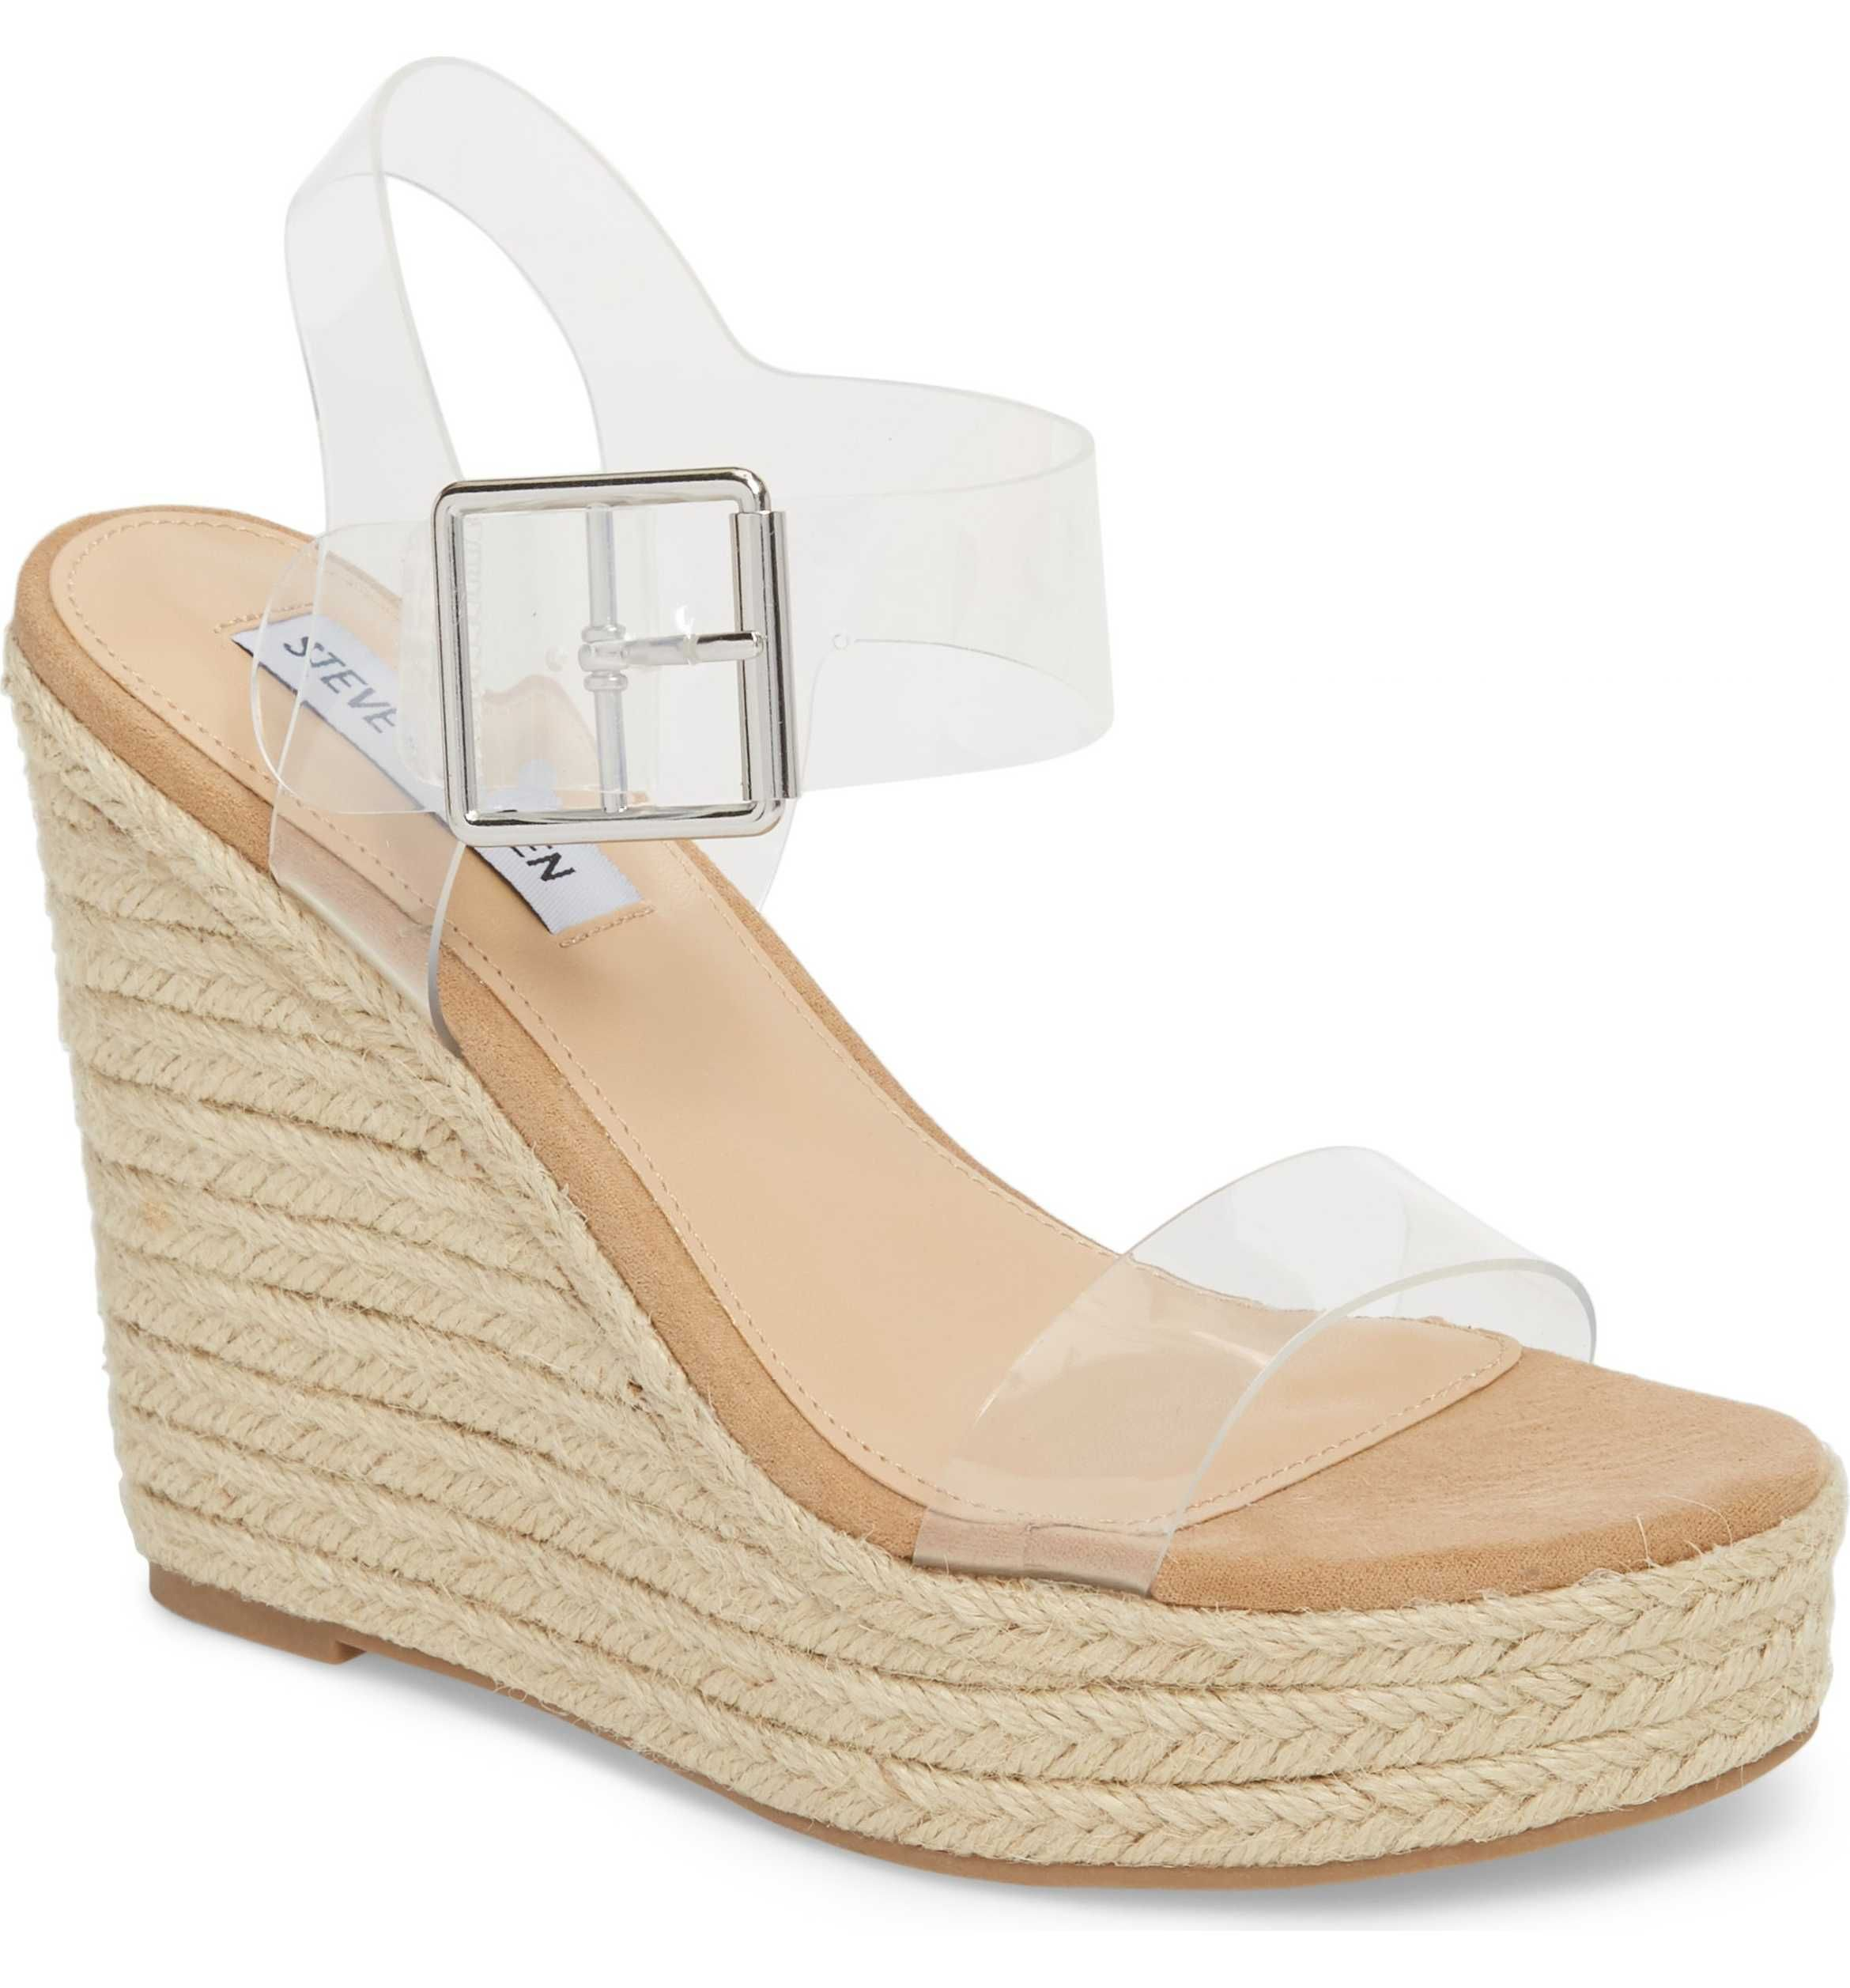 bfbd8f0e811 Main Image - Steve Madden Splash Transparent Strap Wedge Sandal (Women)